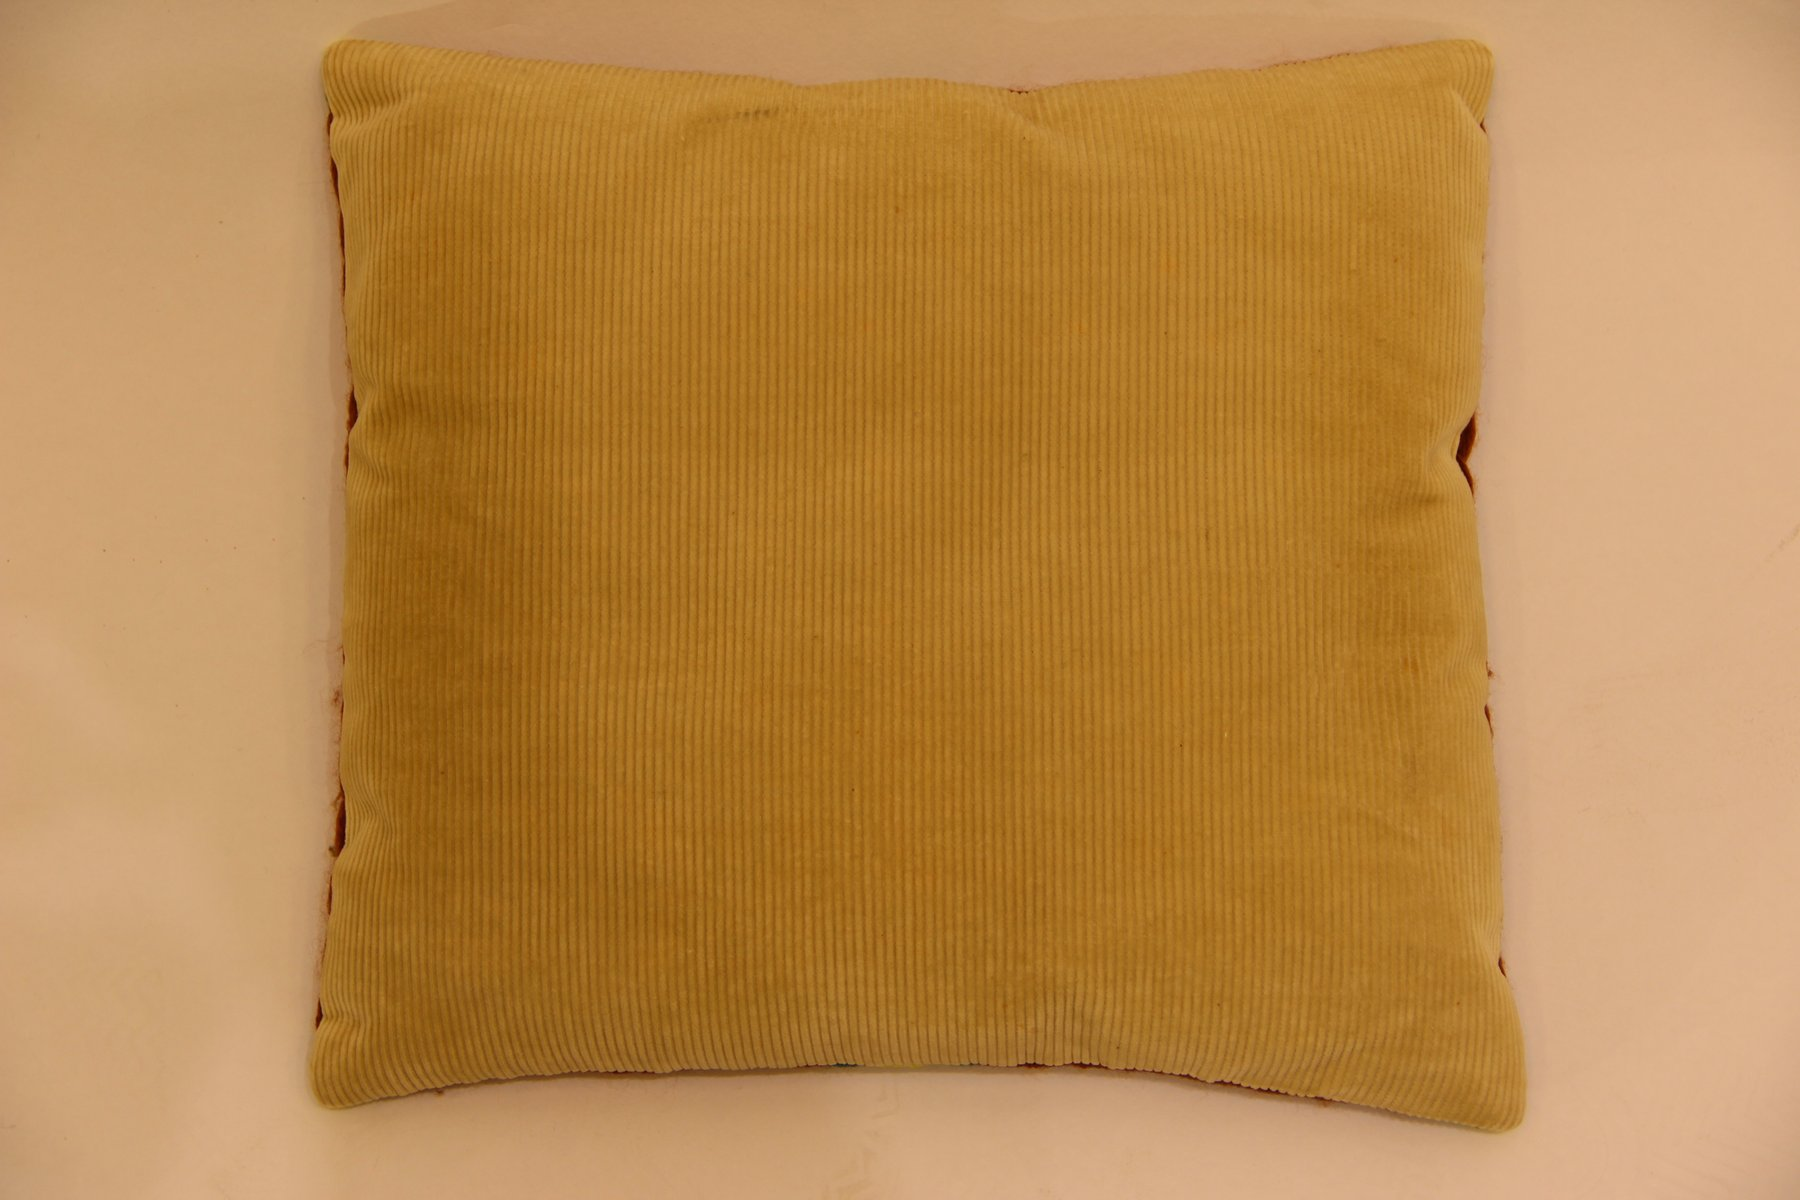 Vintage Hand Embroidered Sofa Cushion for sale at Pamono